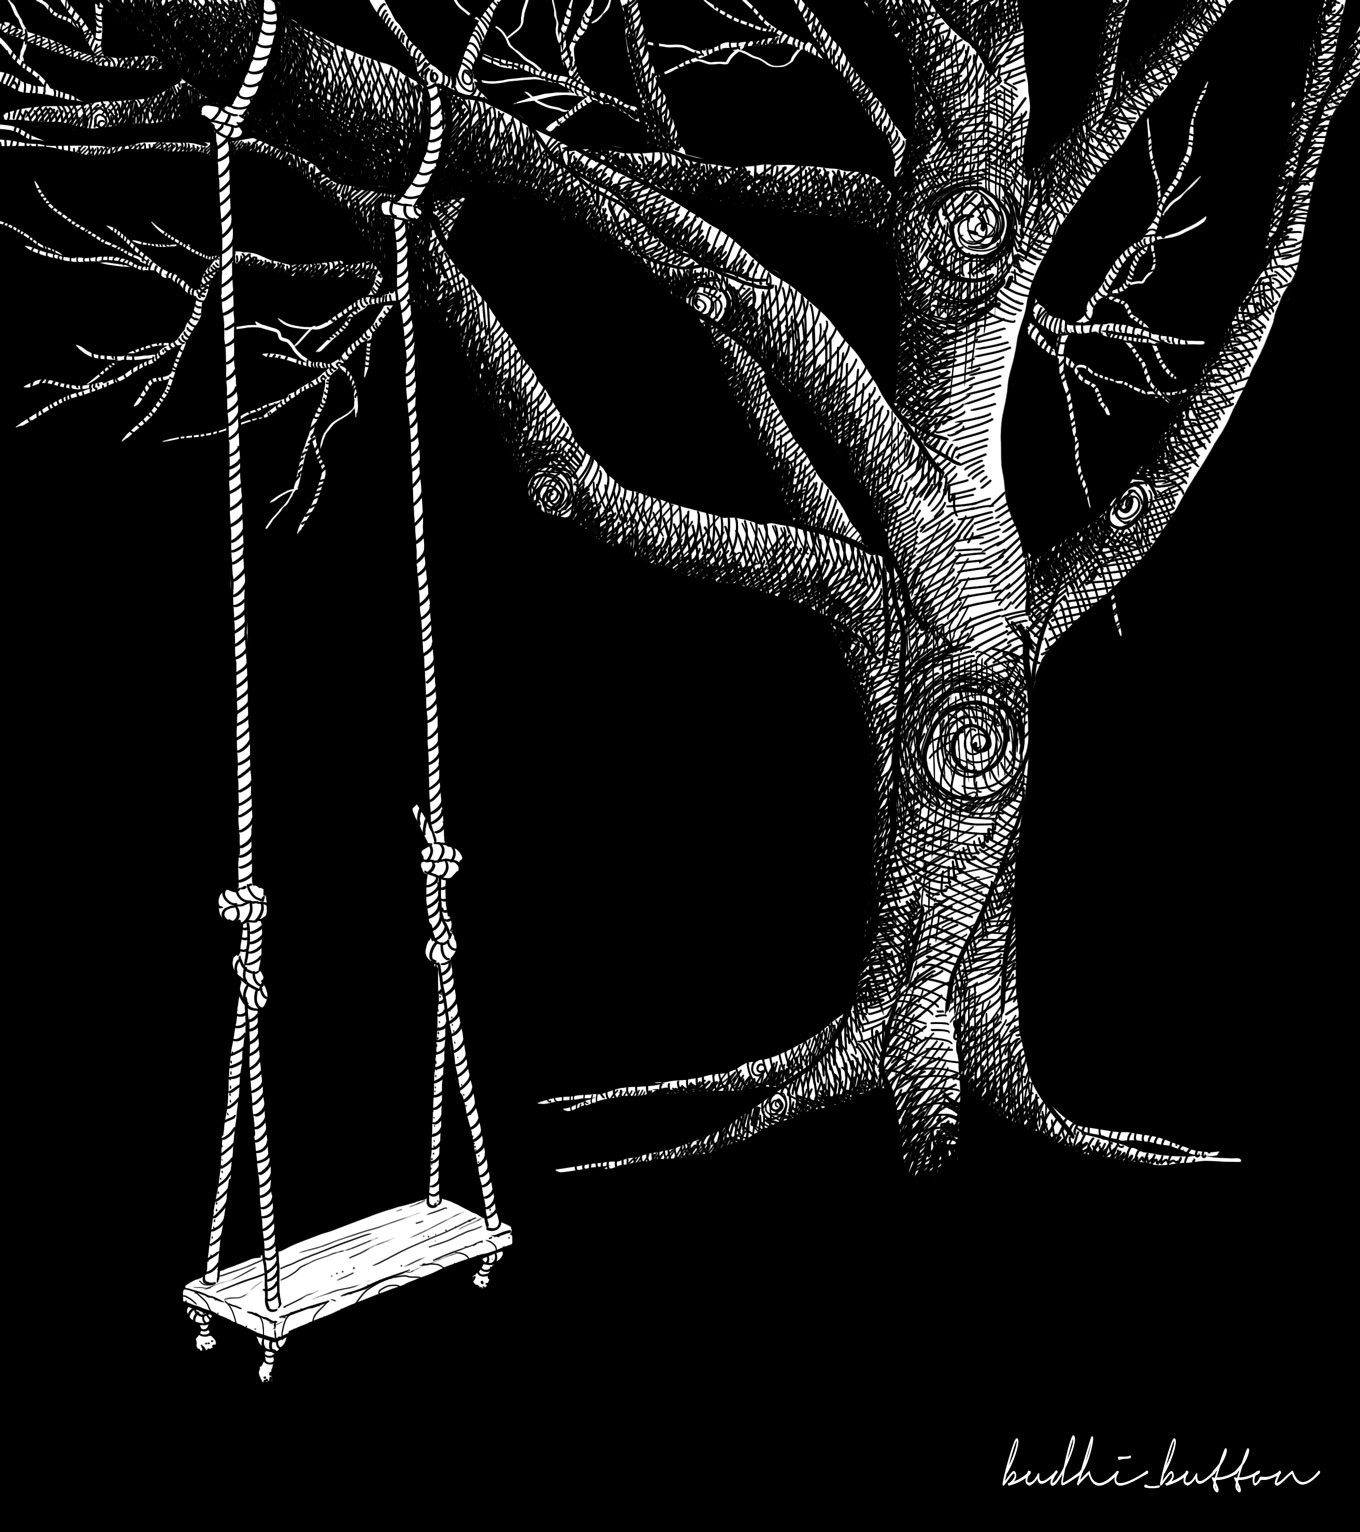 Short Story: Sway of the swing